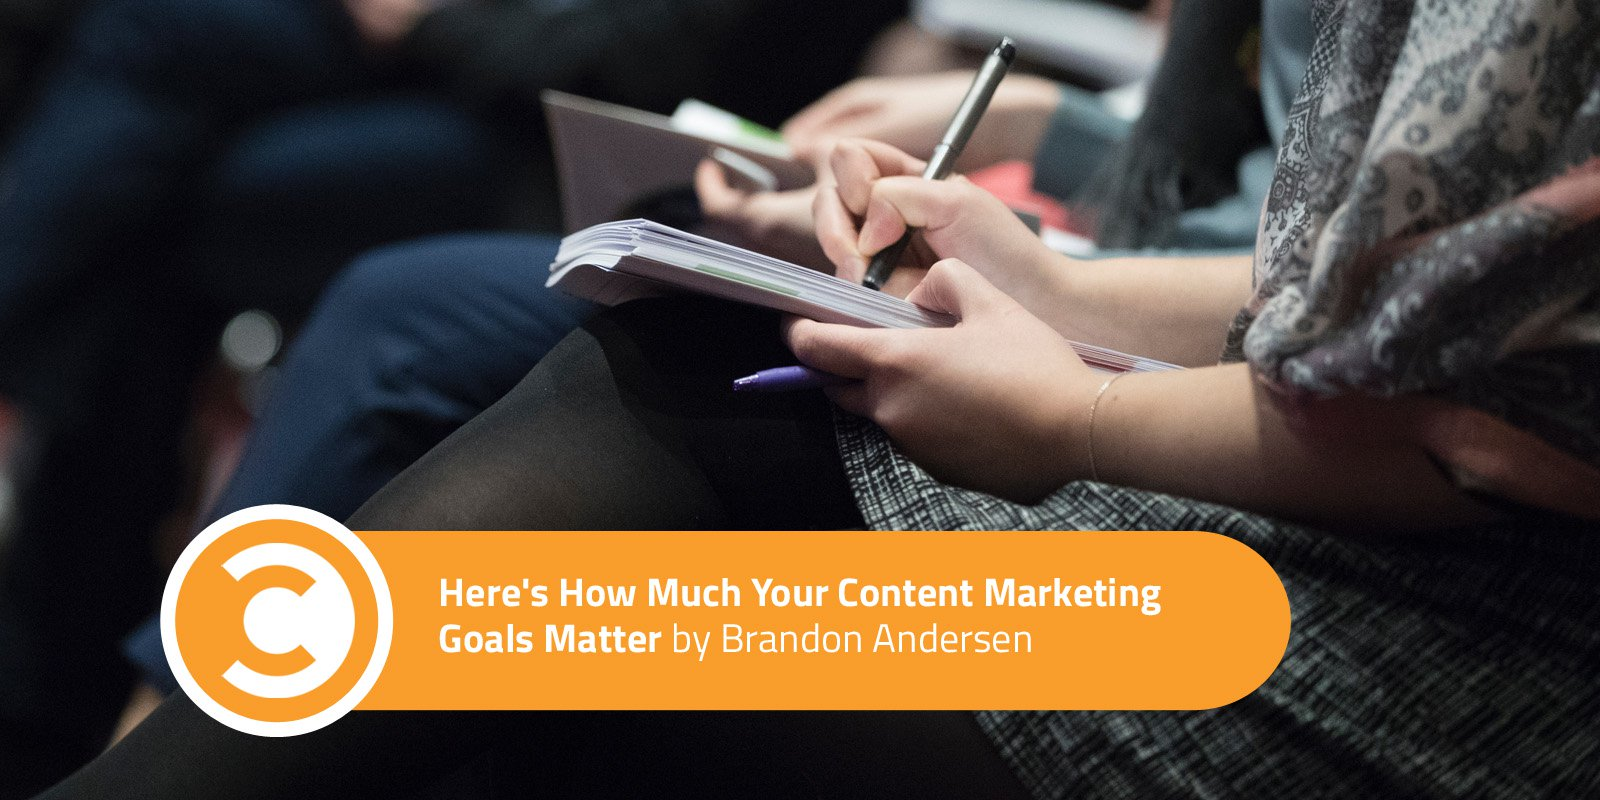 Here's How Much Your Content Marketing Goals Matter